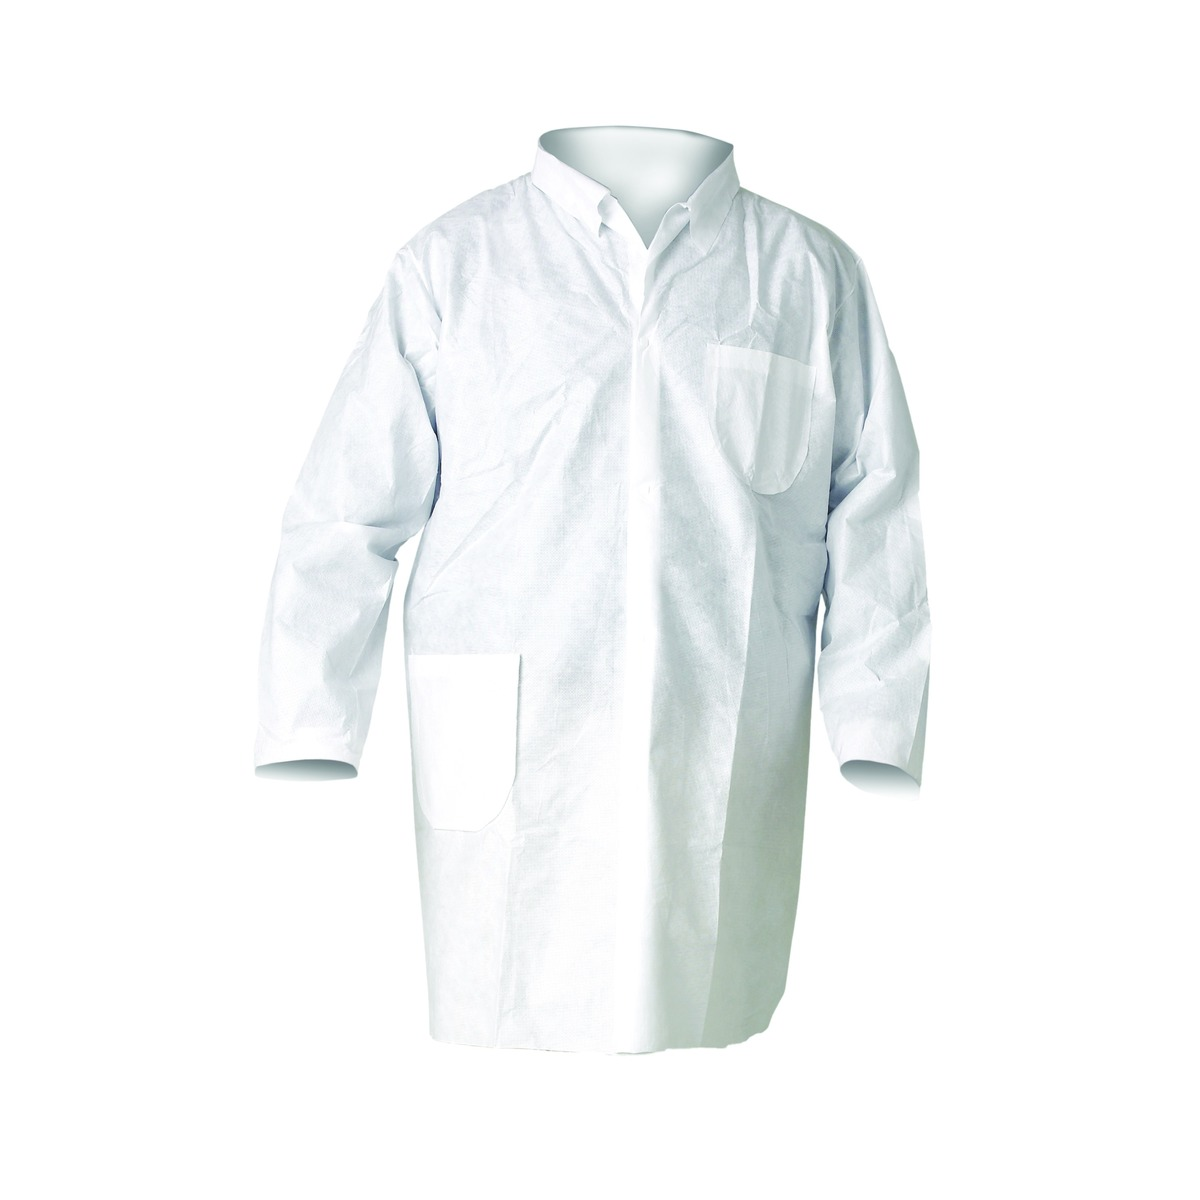 Disposable lab coat, small